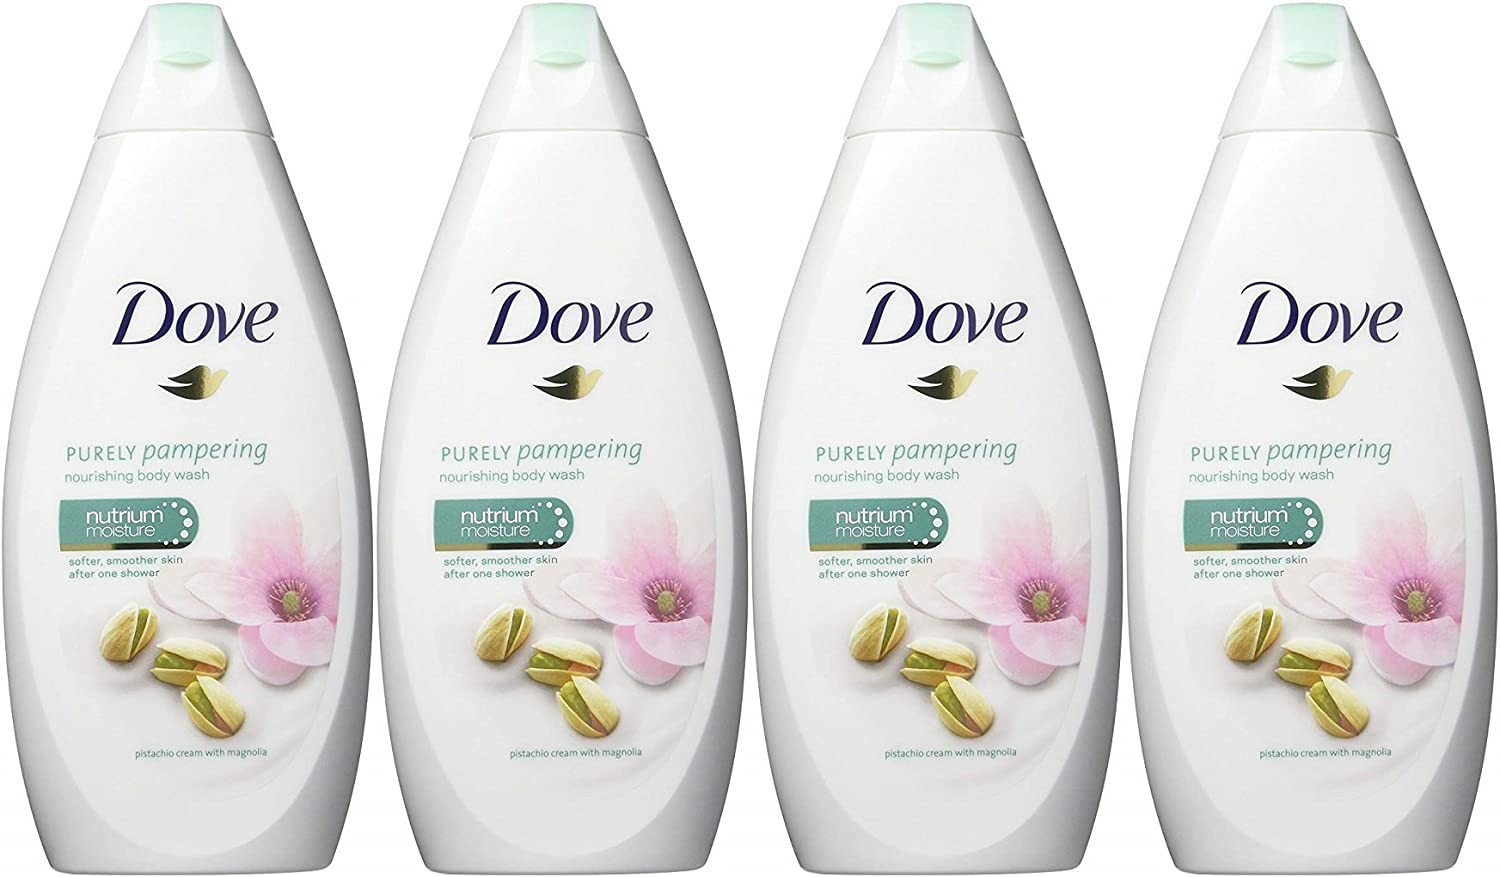 Dove Purely Pampering Body Wash, Pistachio Cream with Magnolia, 16.9 Ounce / 500 Ml (Pack of 4) International Version